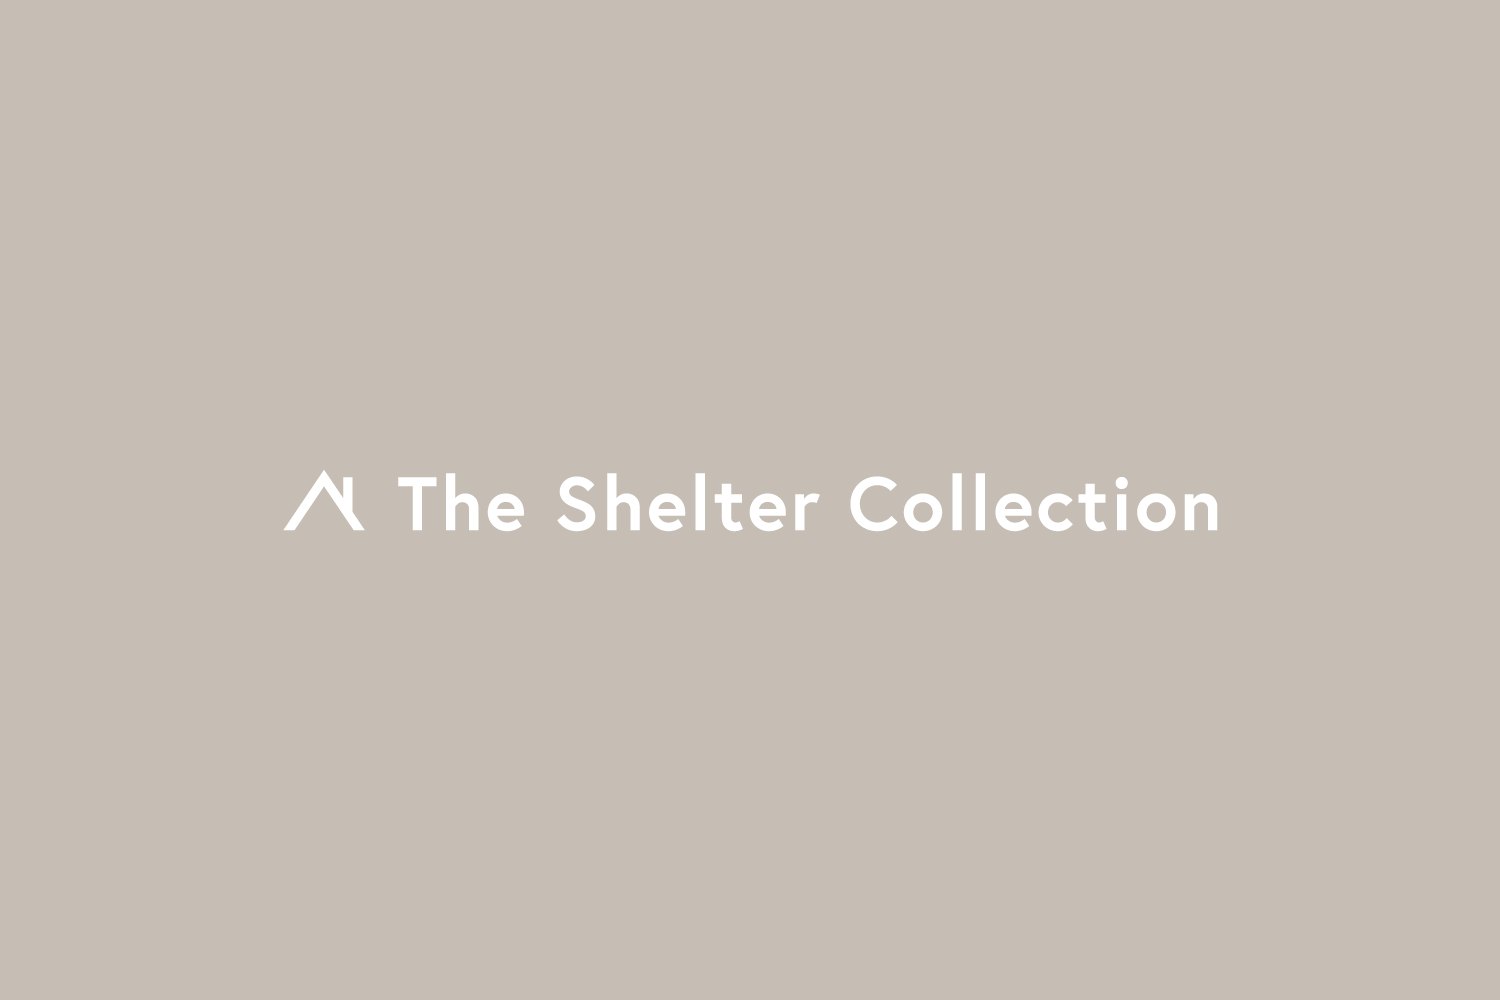 sheltercollection.png